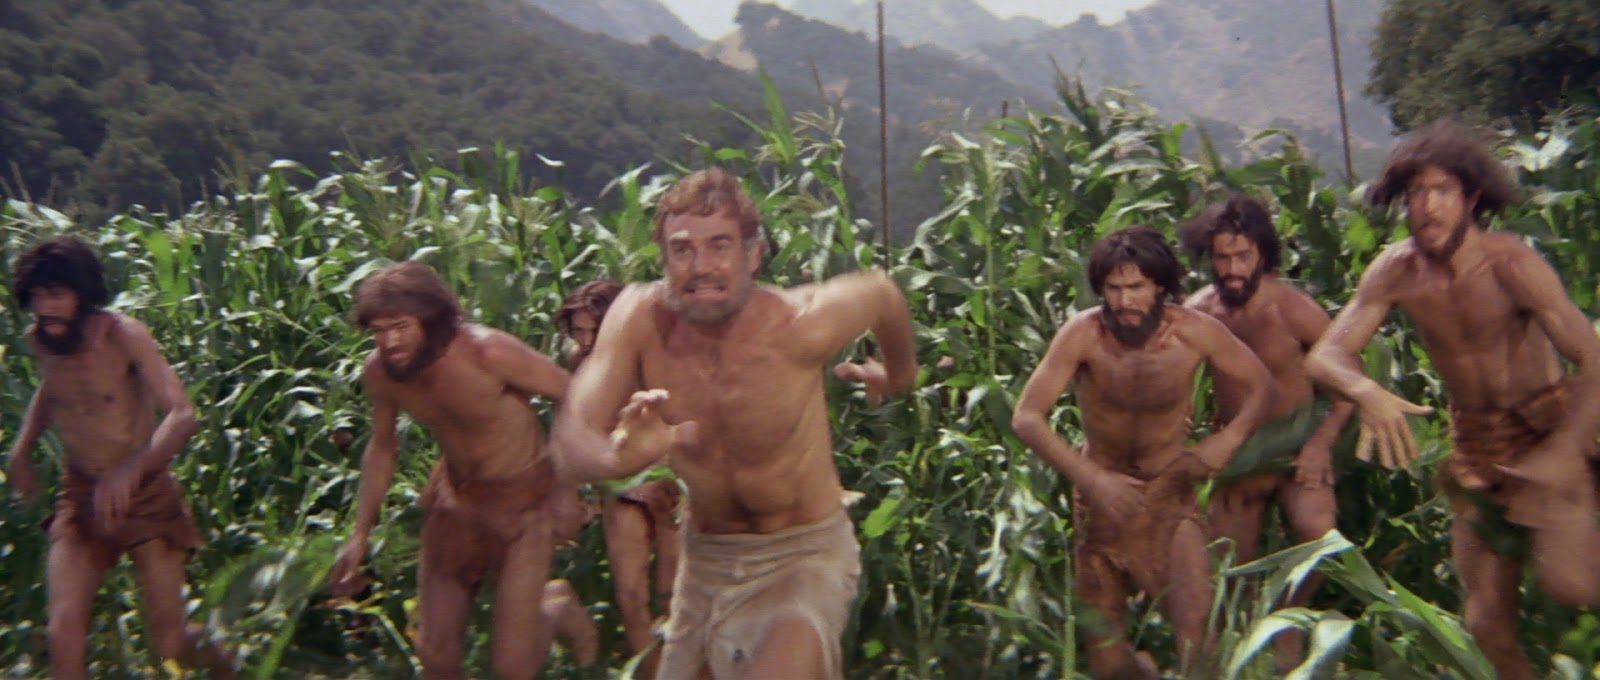 naked jungle charlton heston bwztiy